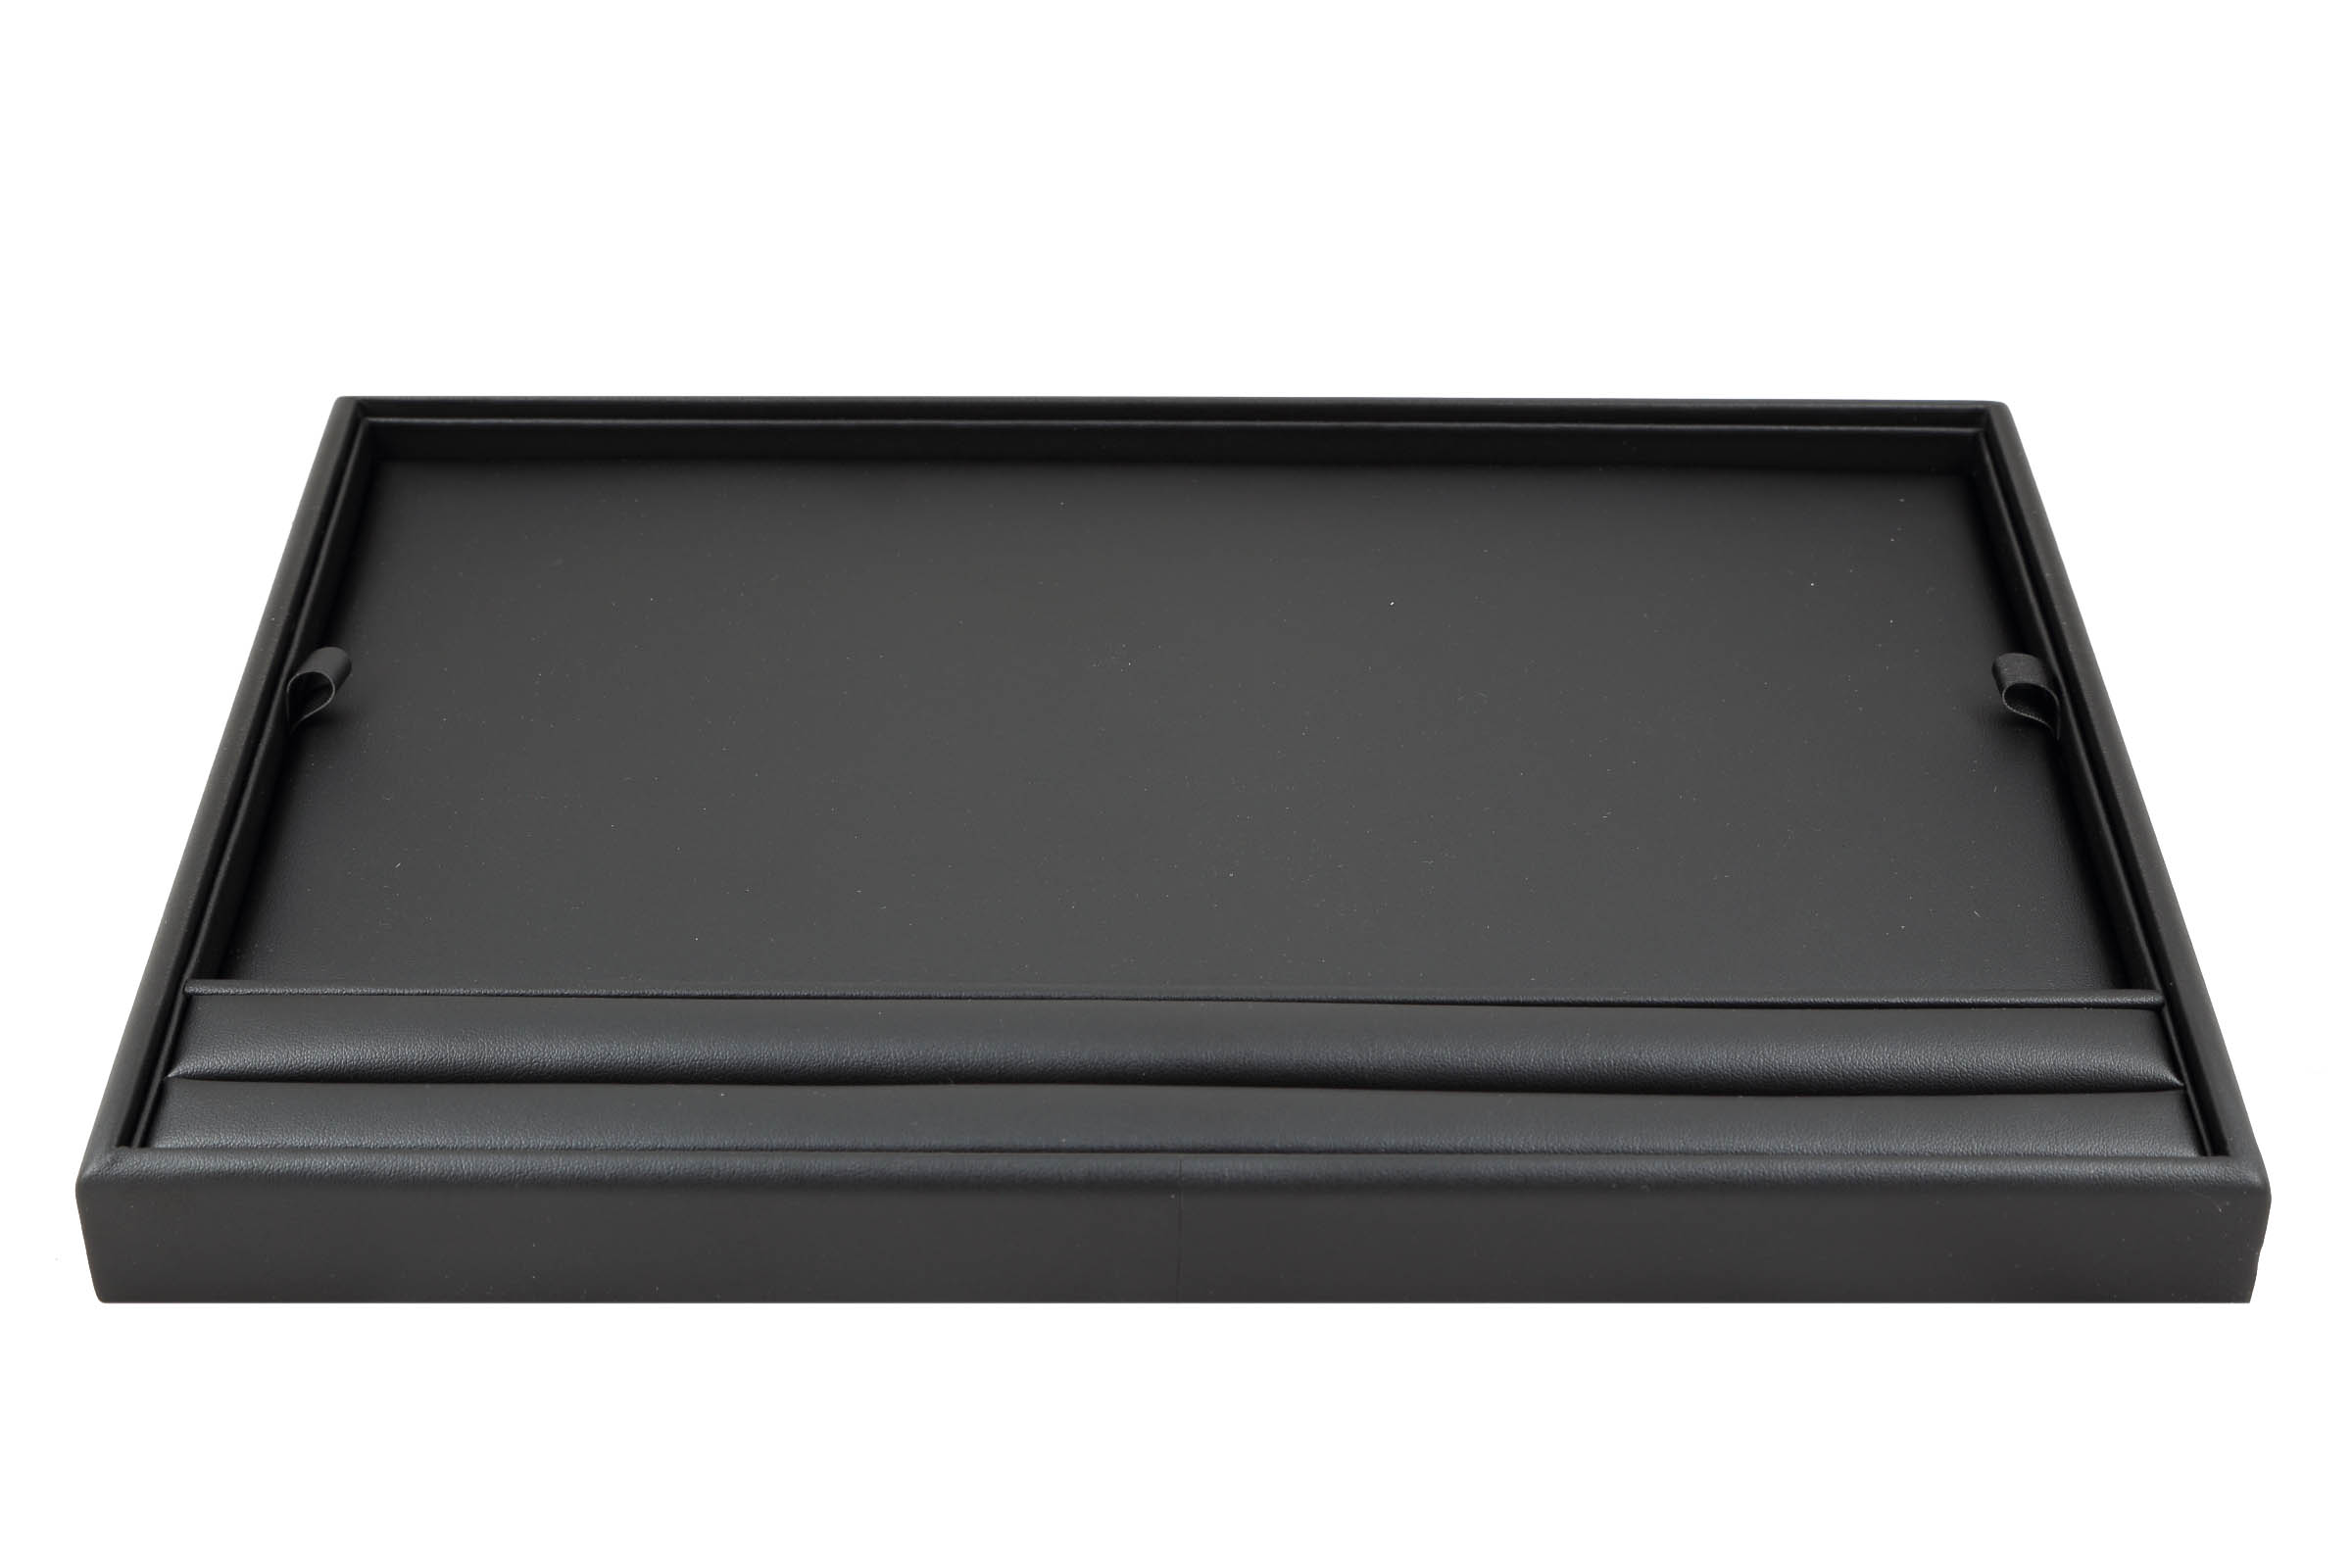 1 x Black Premium Soft Padded Leatherette Presentation Tray With Grooves To Display Rings. Stackable. Dim 315(w) x 225(d) x 27mm